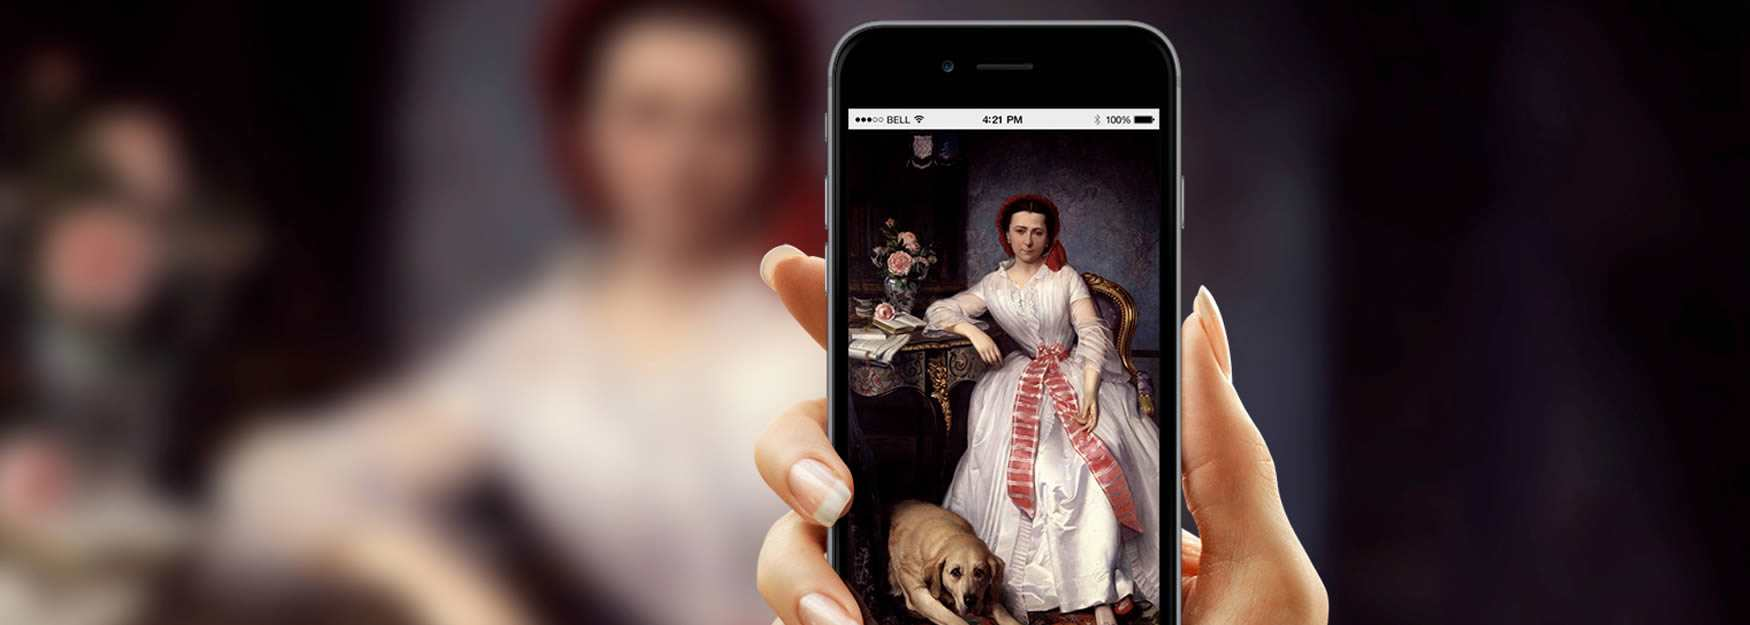 Smartify - Scan the art, get the story!